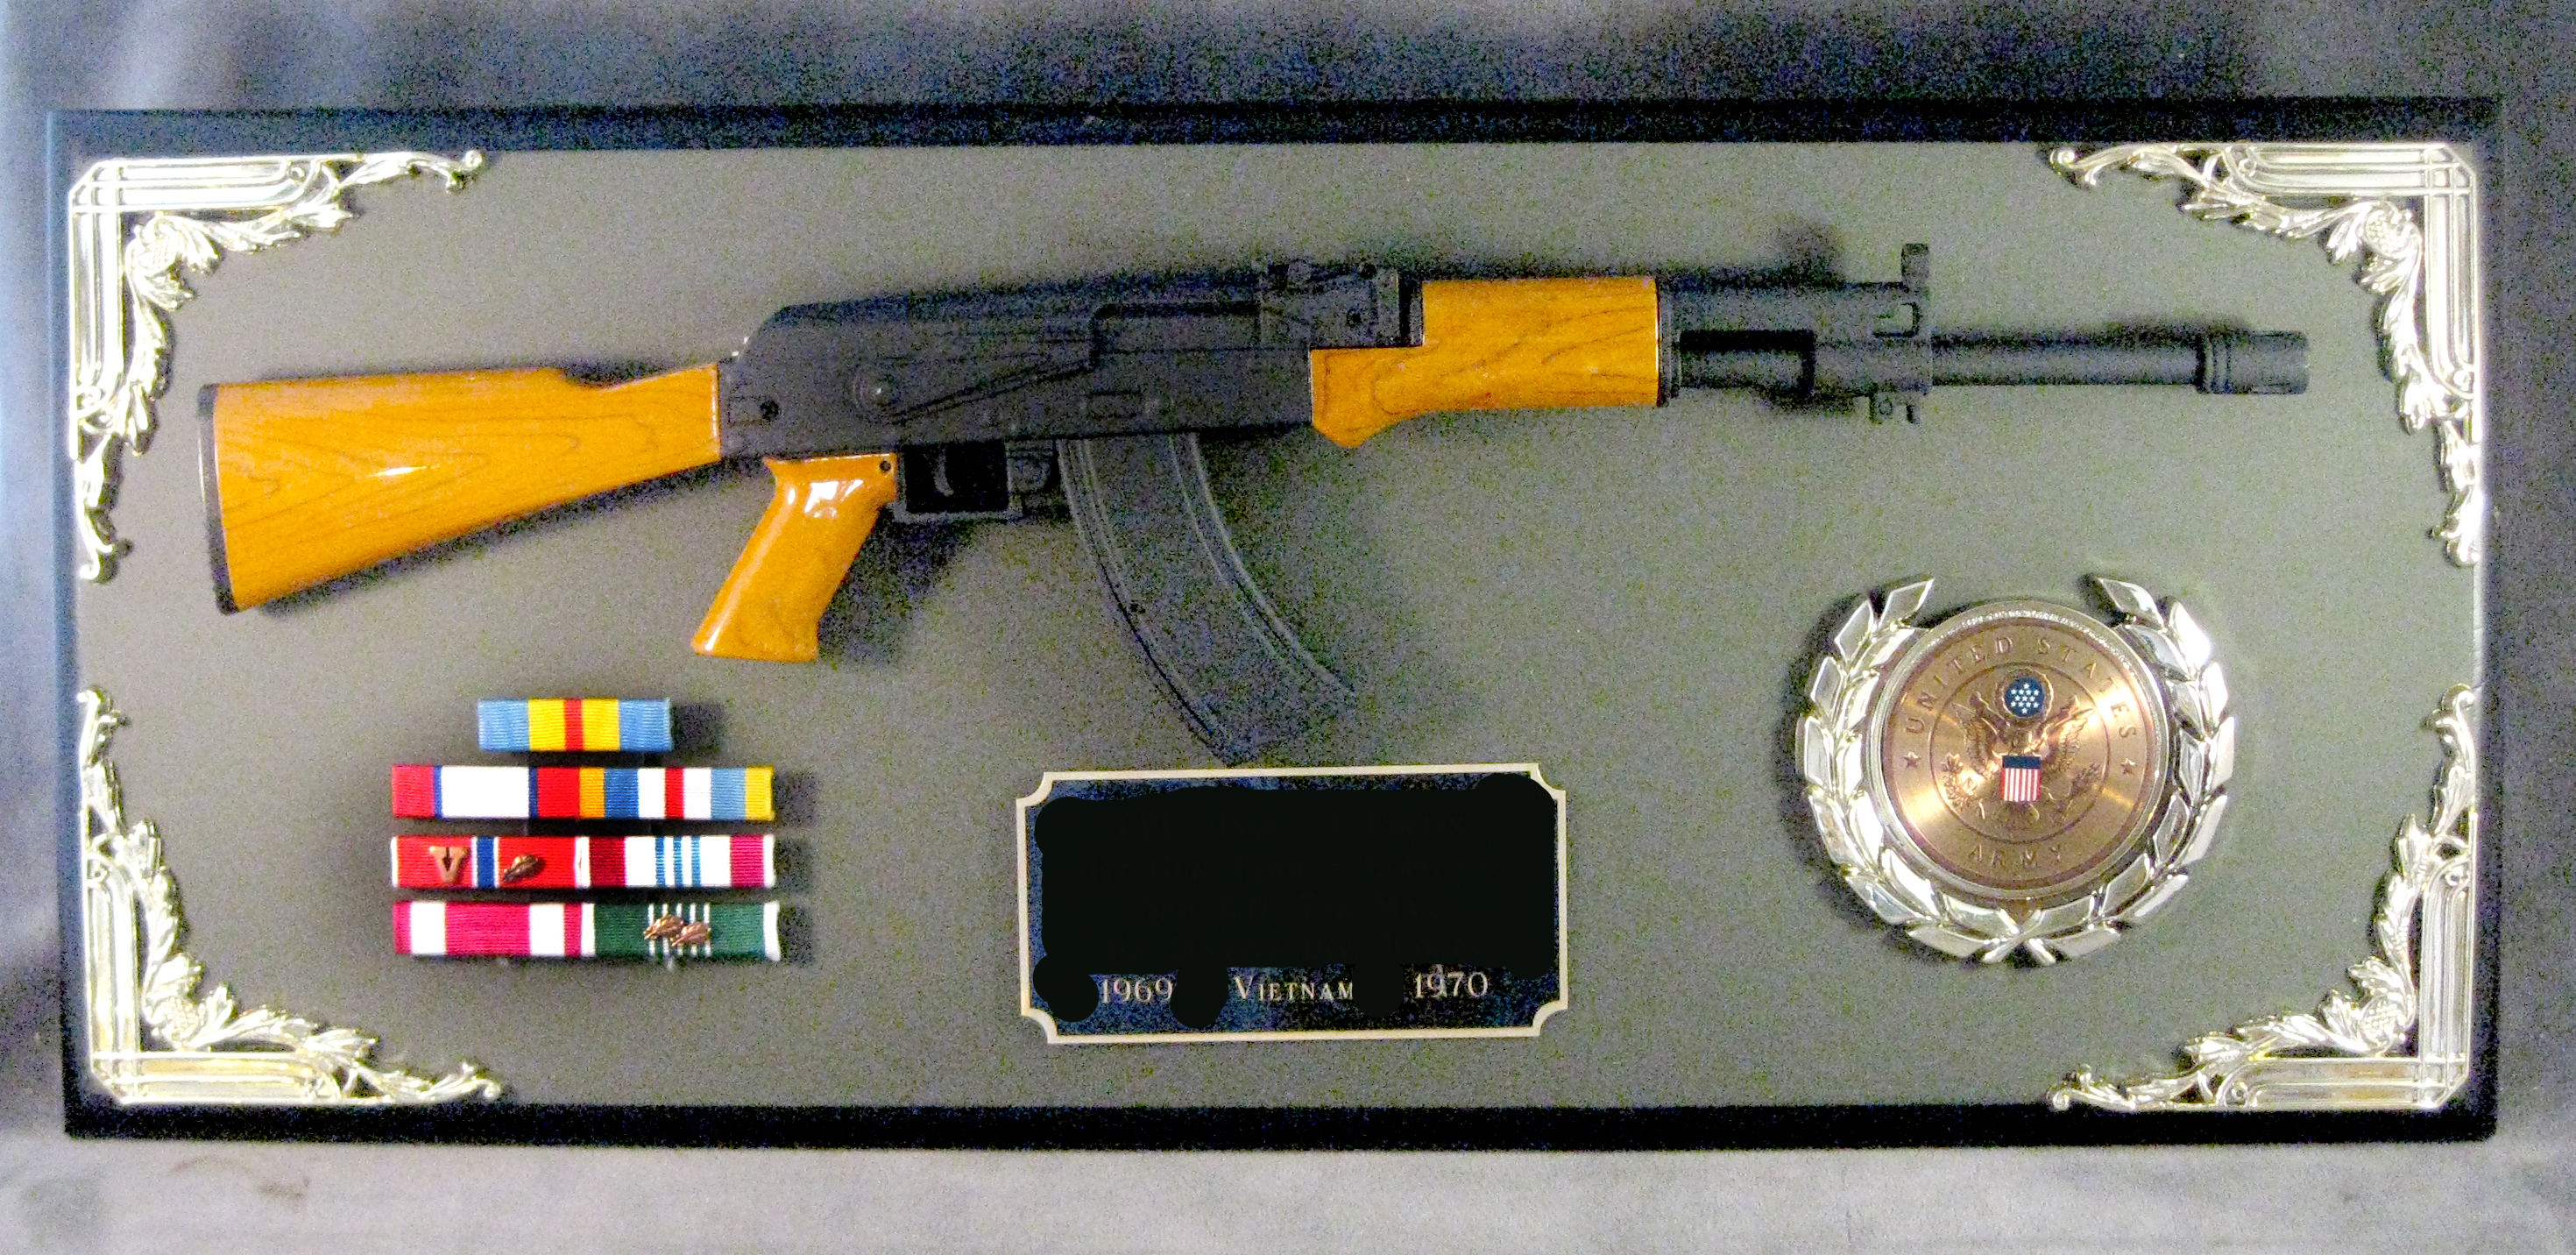 Award 1/3 scale AK-47 rifle - Click Image to Close